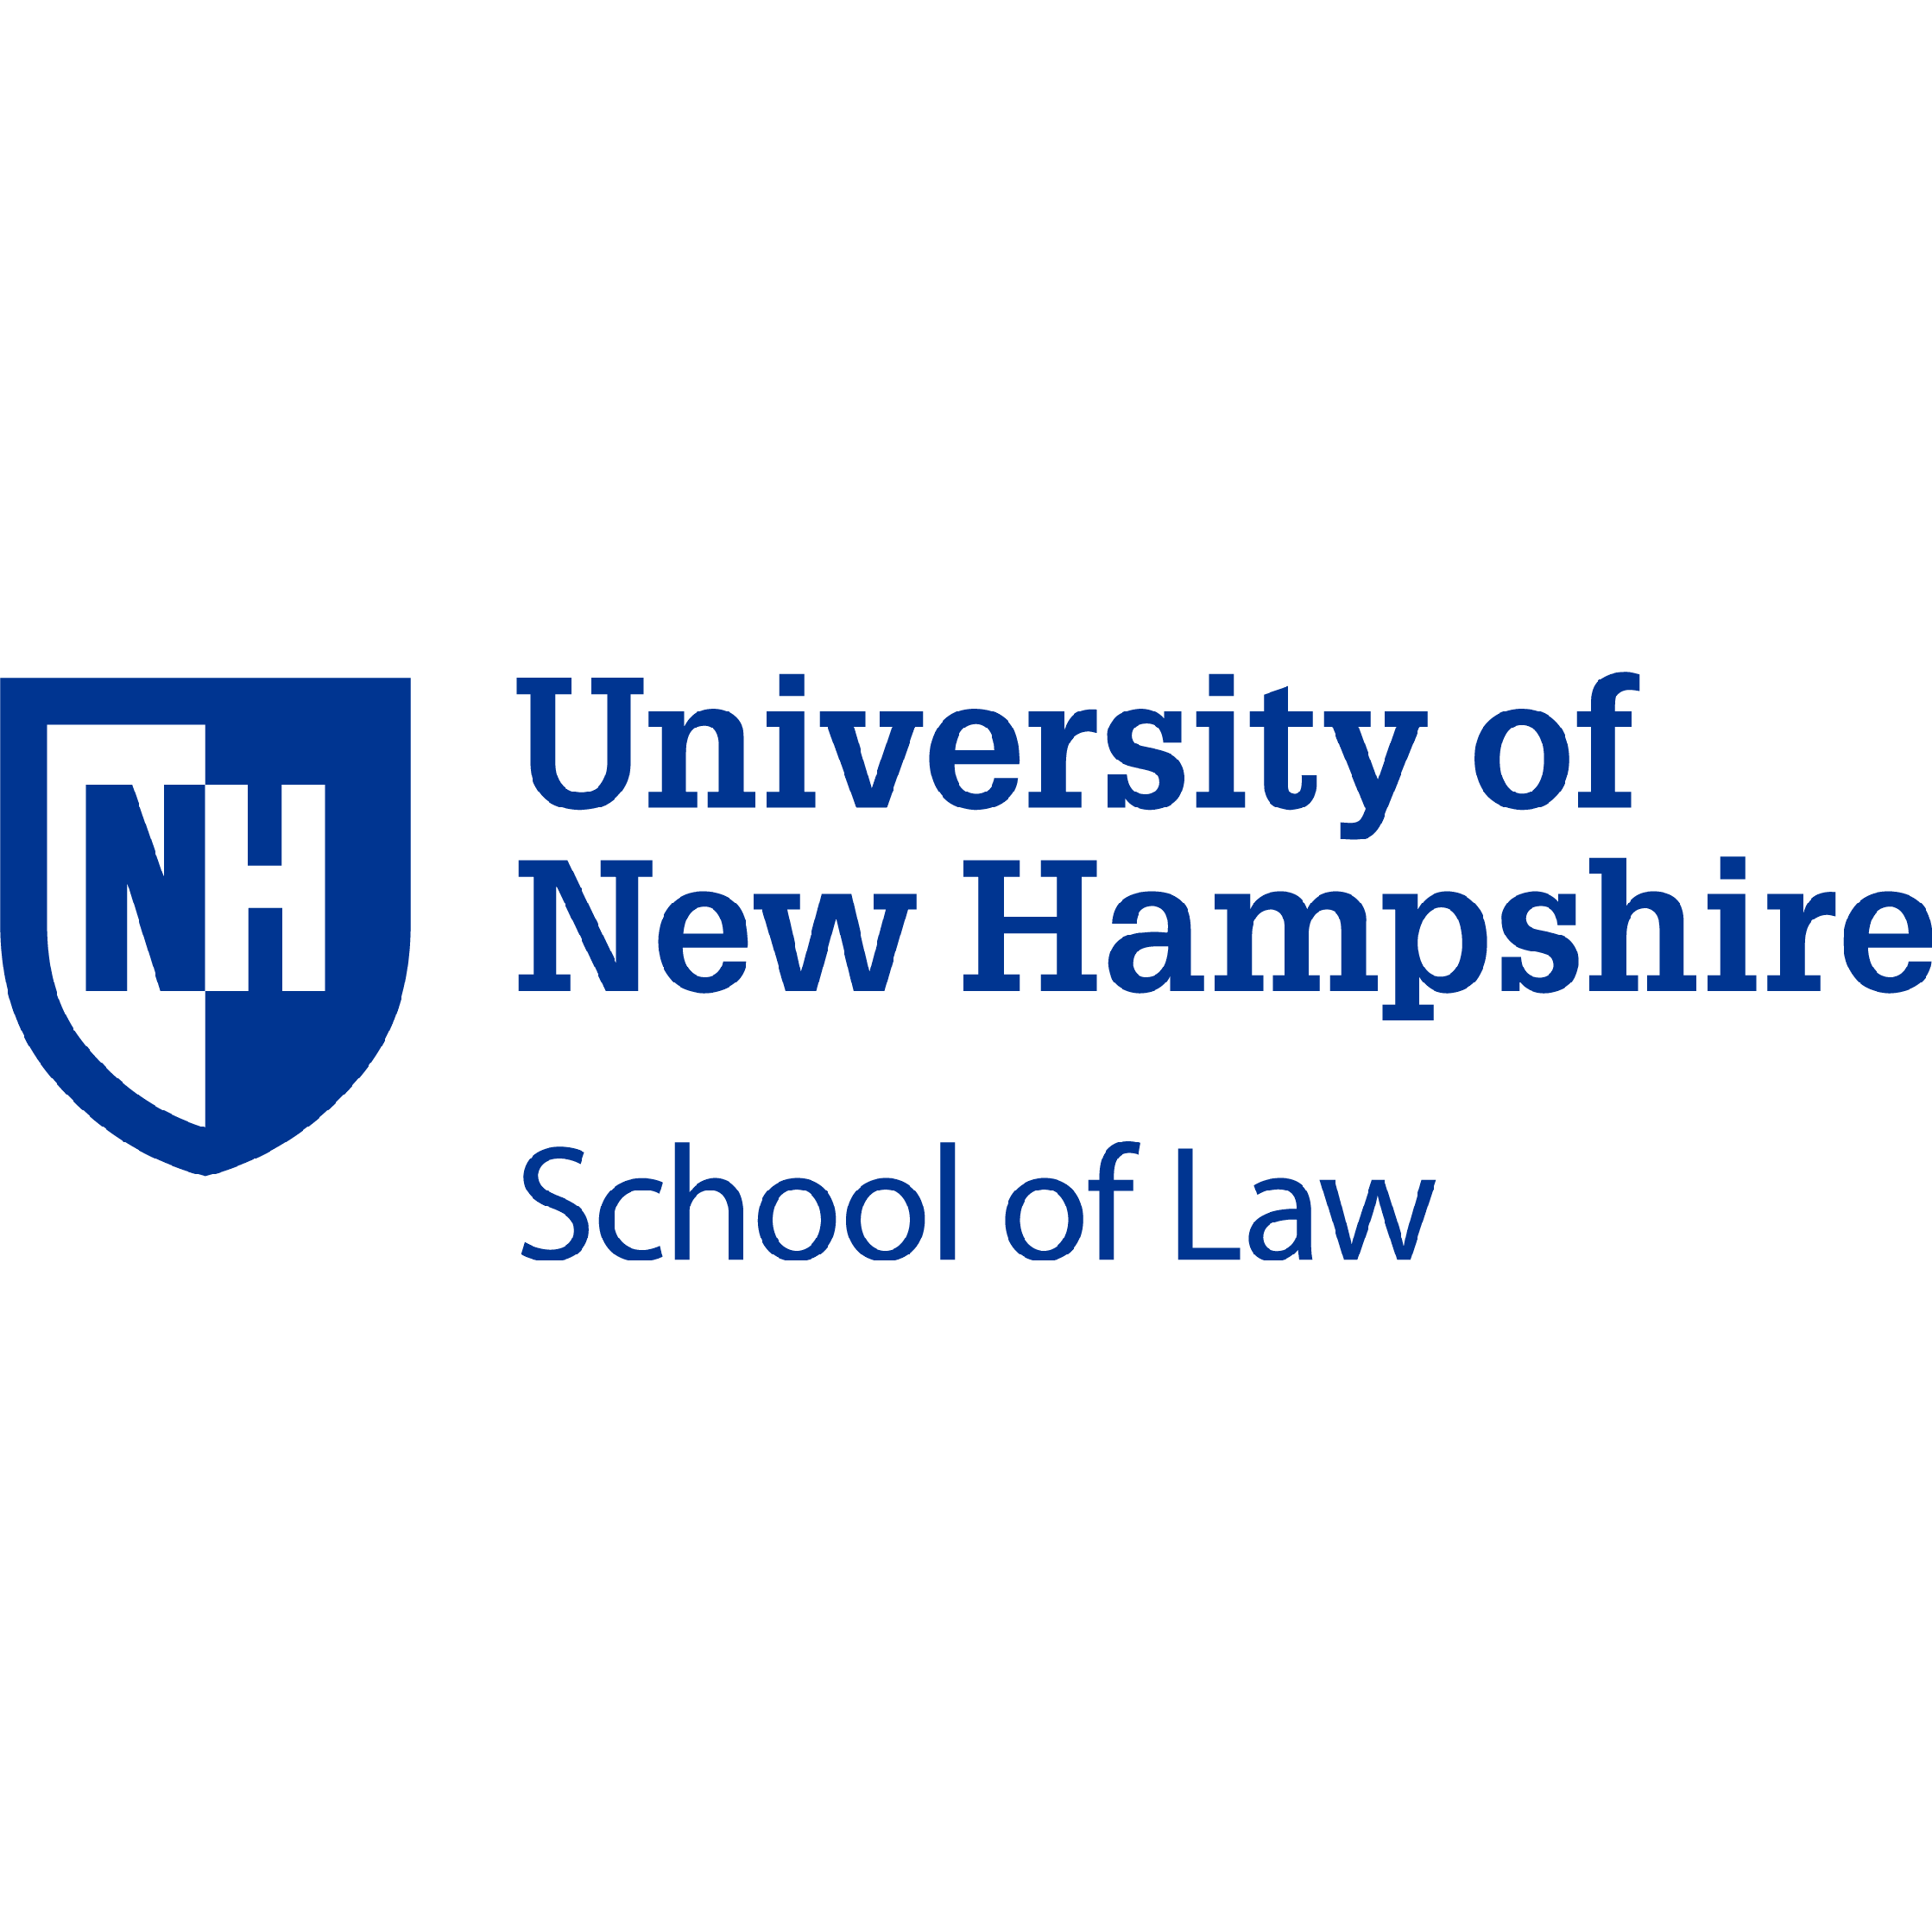 Franklin Pierce Law Center - University of New Hampshire